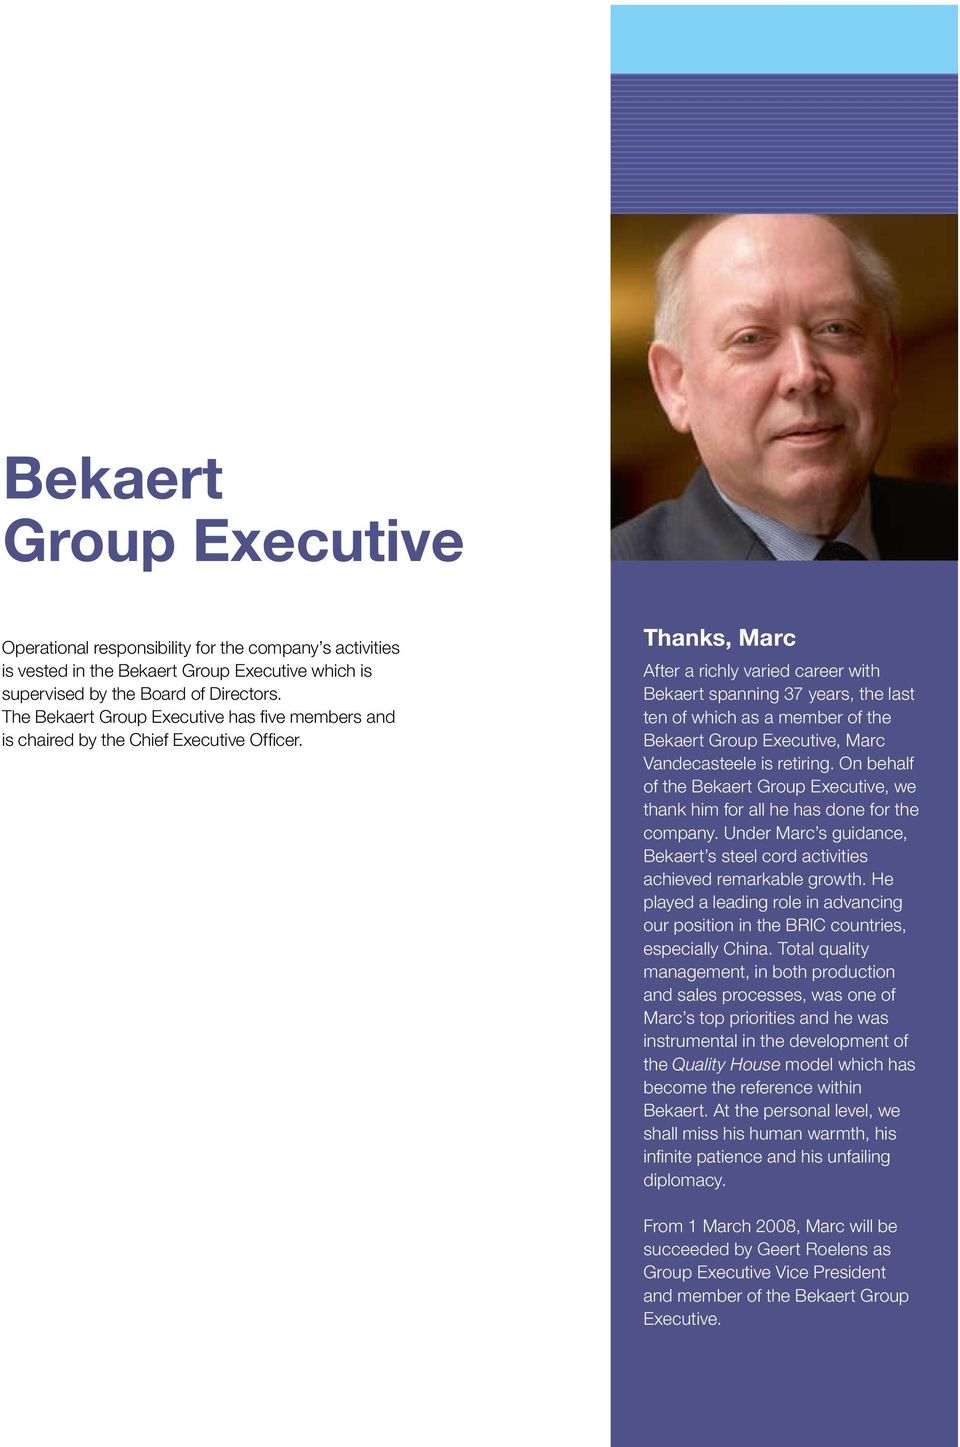 Thanks, Marc After a richly varied career with Bekaert spanning 37 years, the last ten of which as a member of the Bekaert Group Executive, Marc Vandecasteele is retiring.